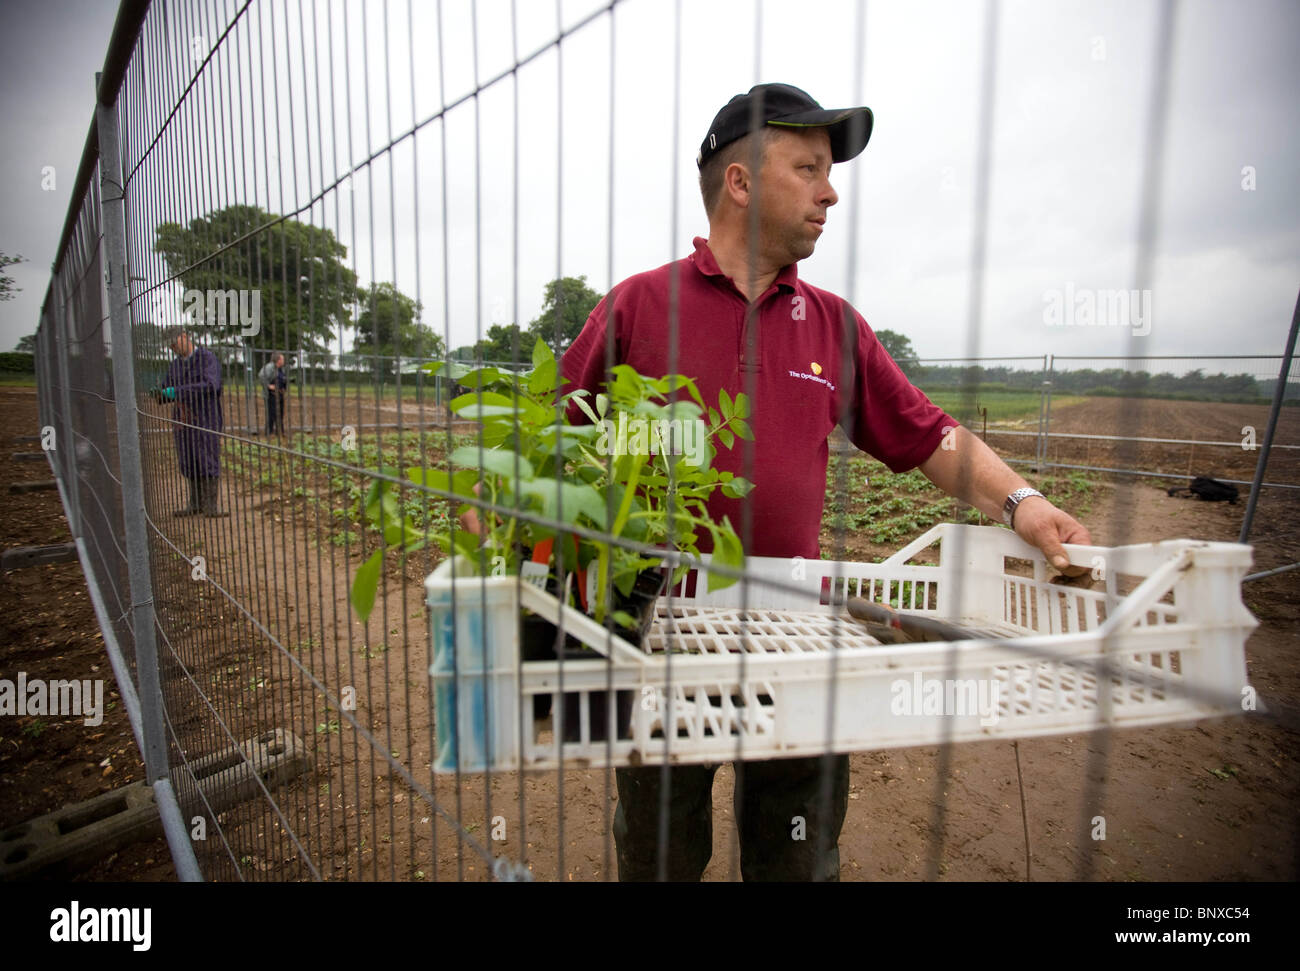 Planting Genetically Modified Potatoes in Norfolk,England - Stock Image